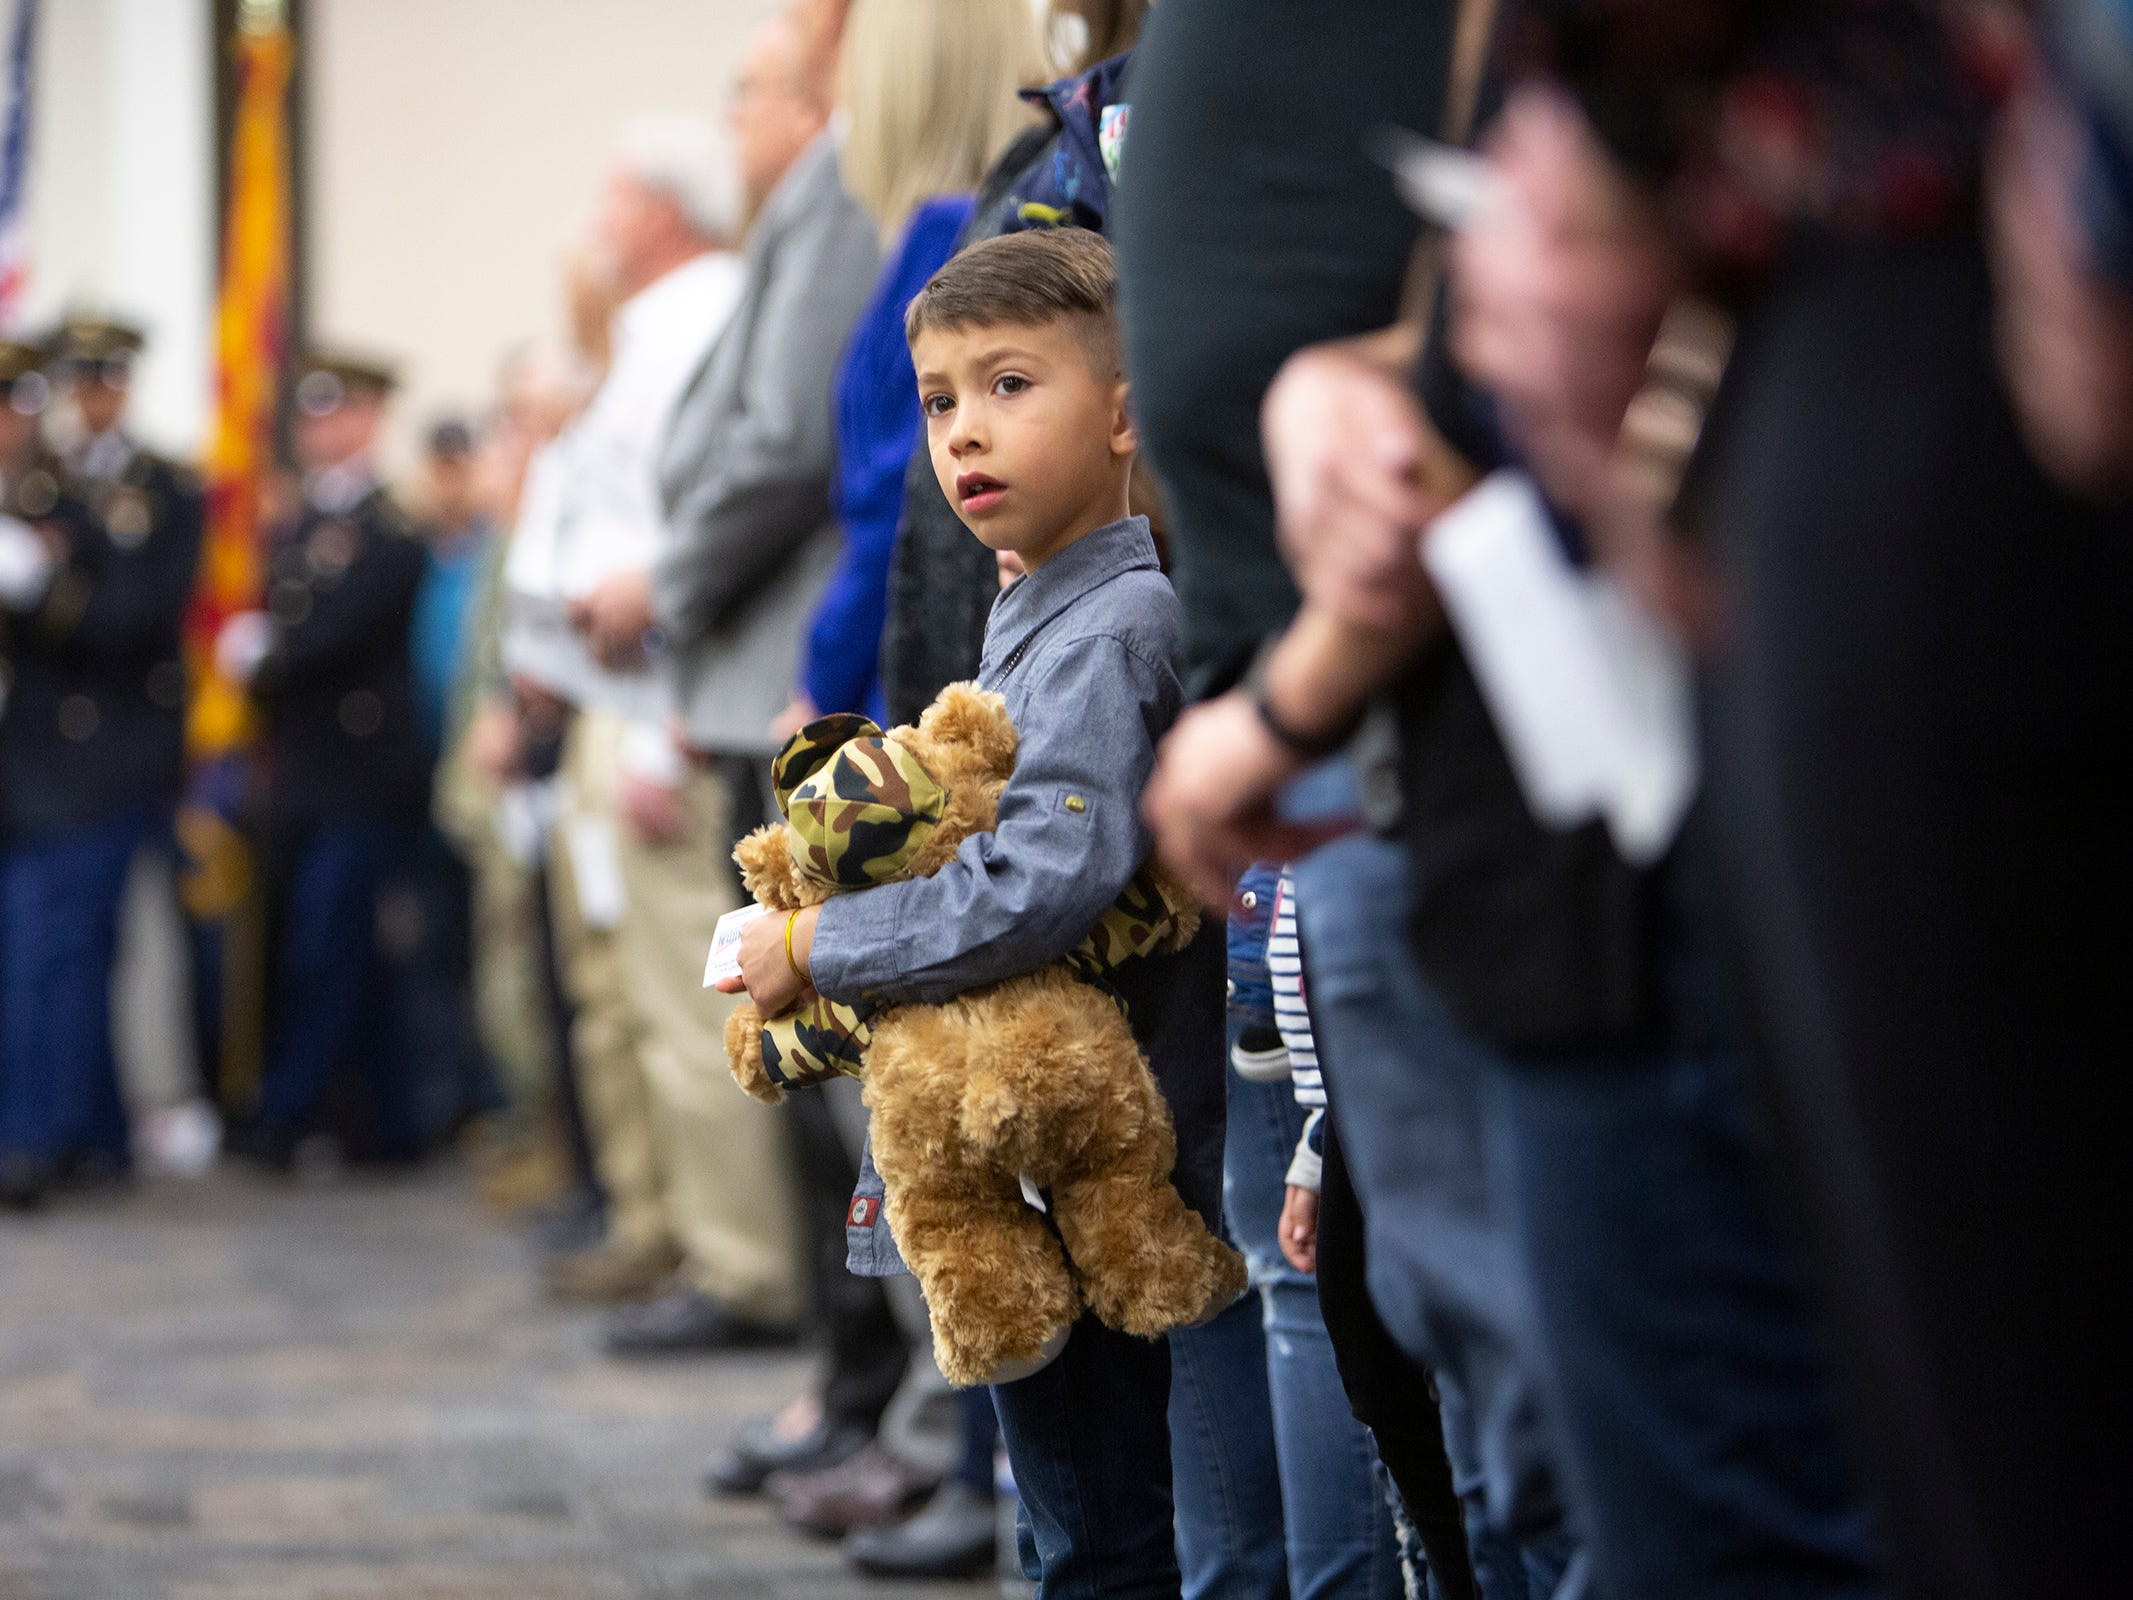 """A child standing in the front row holds a """"battalion buddy"""" stuffed animal at the deployment ceremony for the 253rd Engineer Battalion at Papago Park Military Reservation on Sunday, Feb. 24, 2019. The battalion buddies were distributed by Operation Gratitude volunteers."""